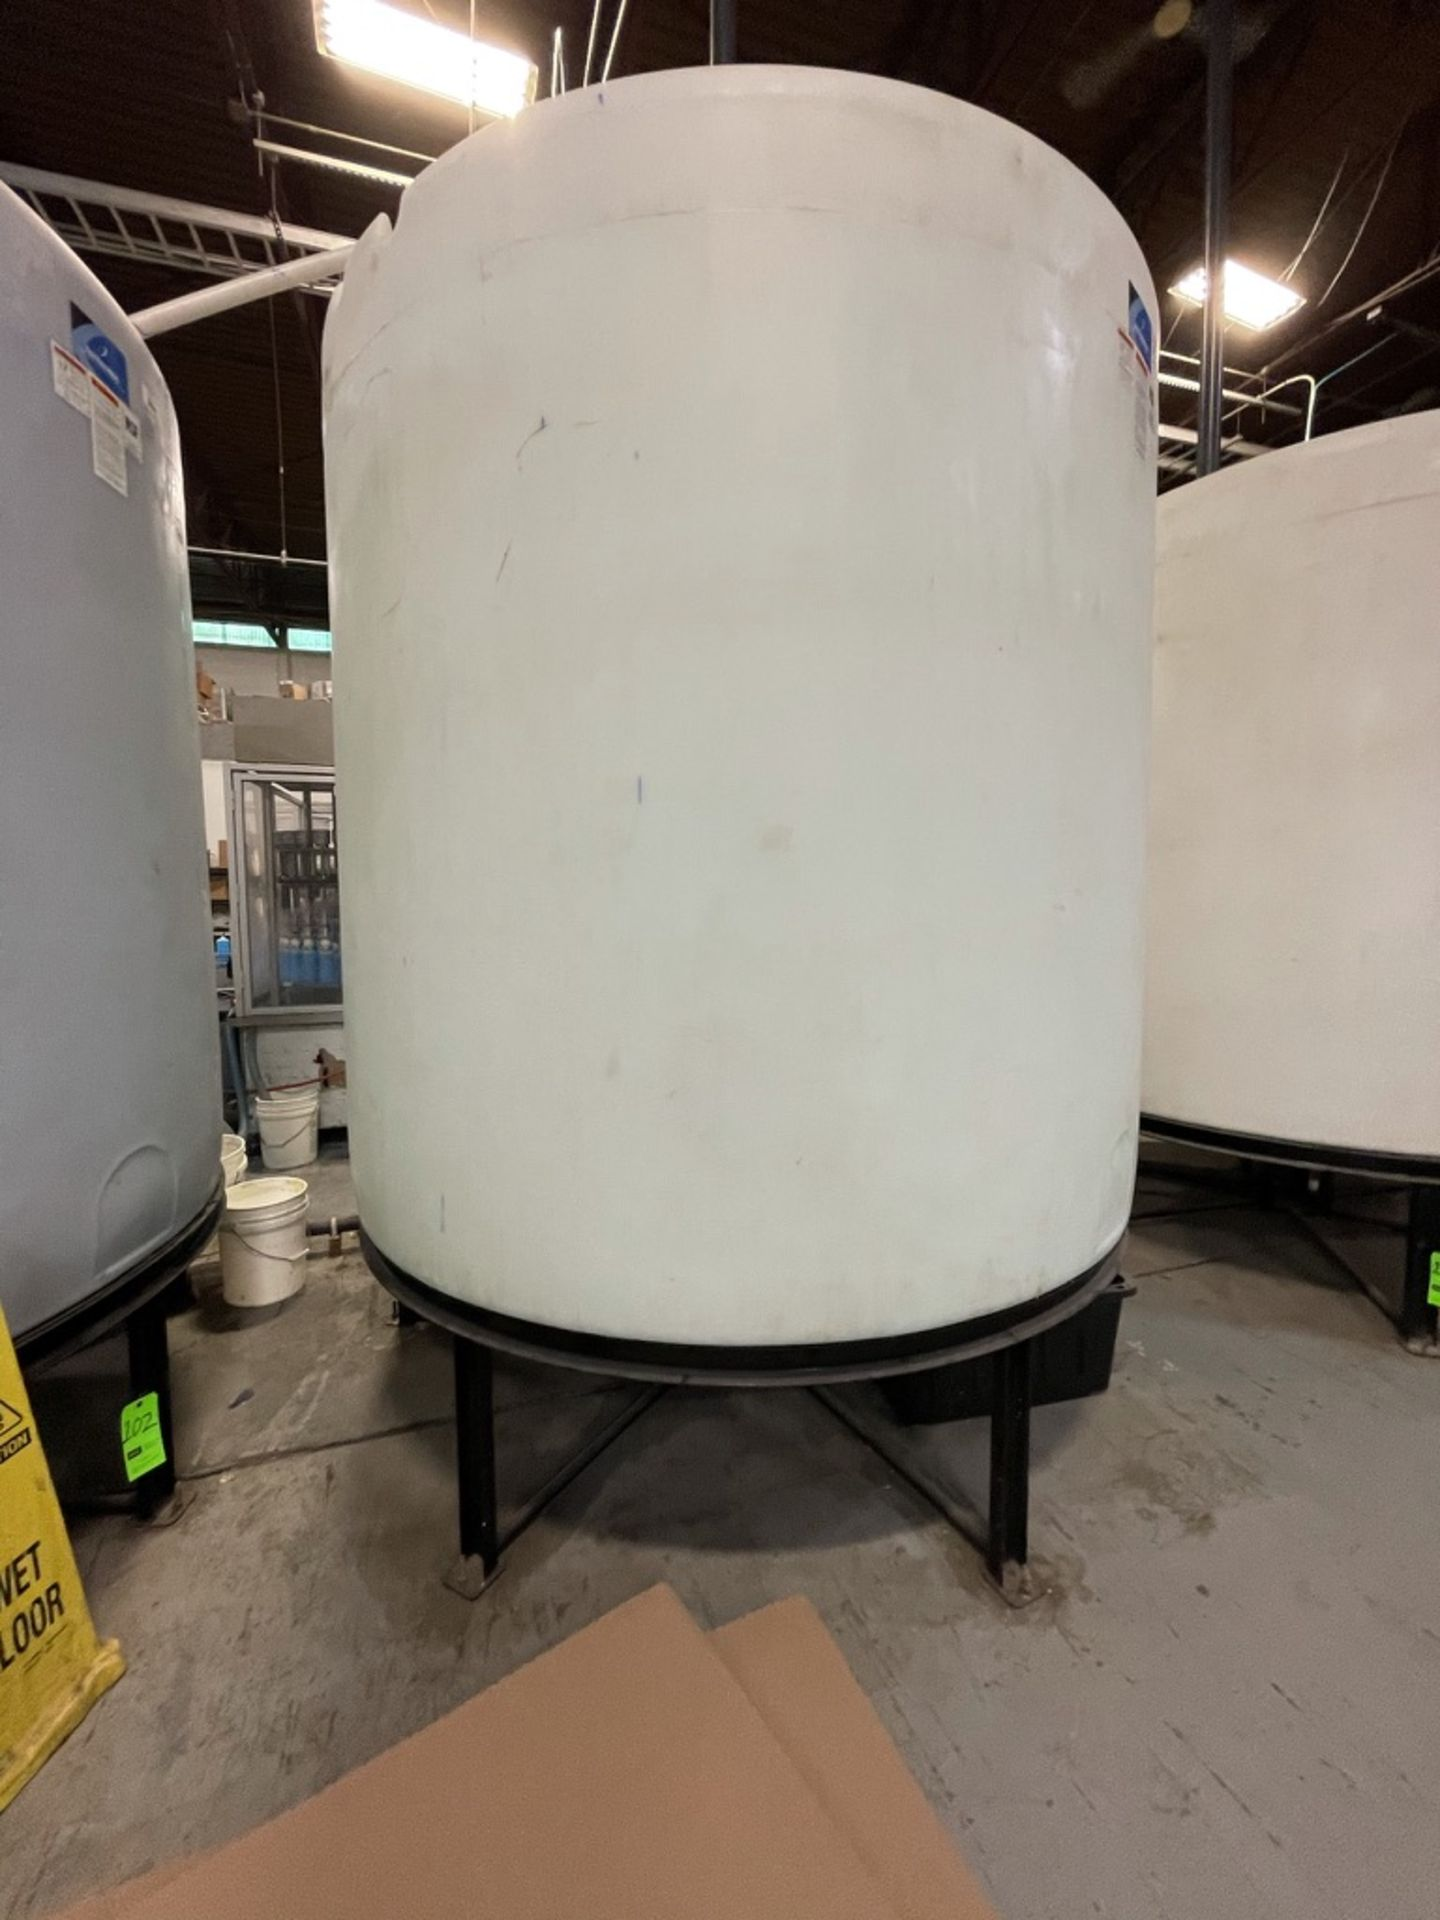 ACE ROTO MOLD APPROX. 2,200 GALLON TANK WITH STEEL FRAME - Image 4 of 4